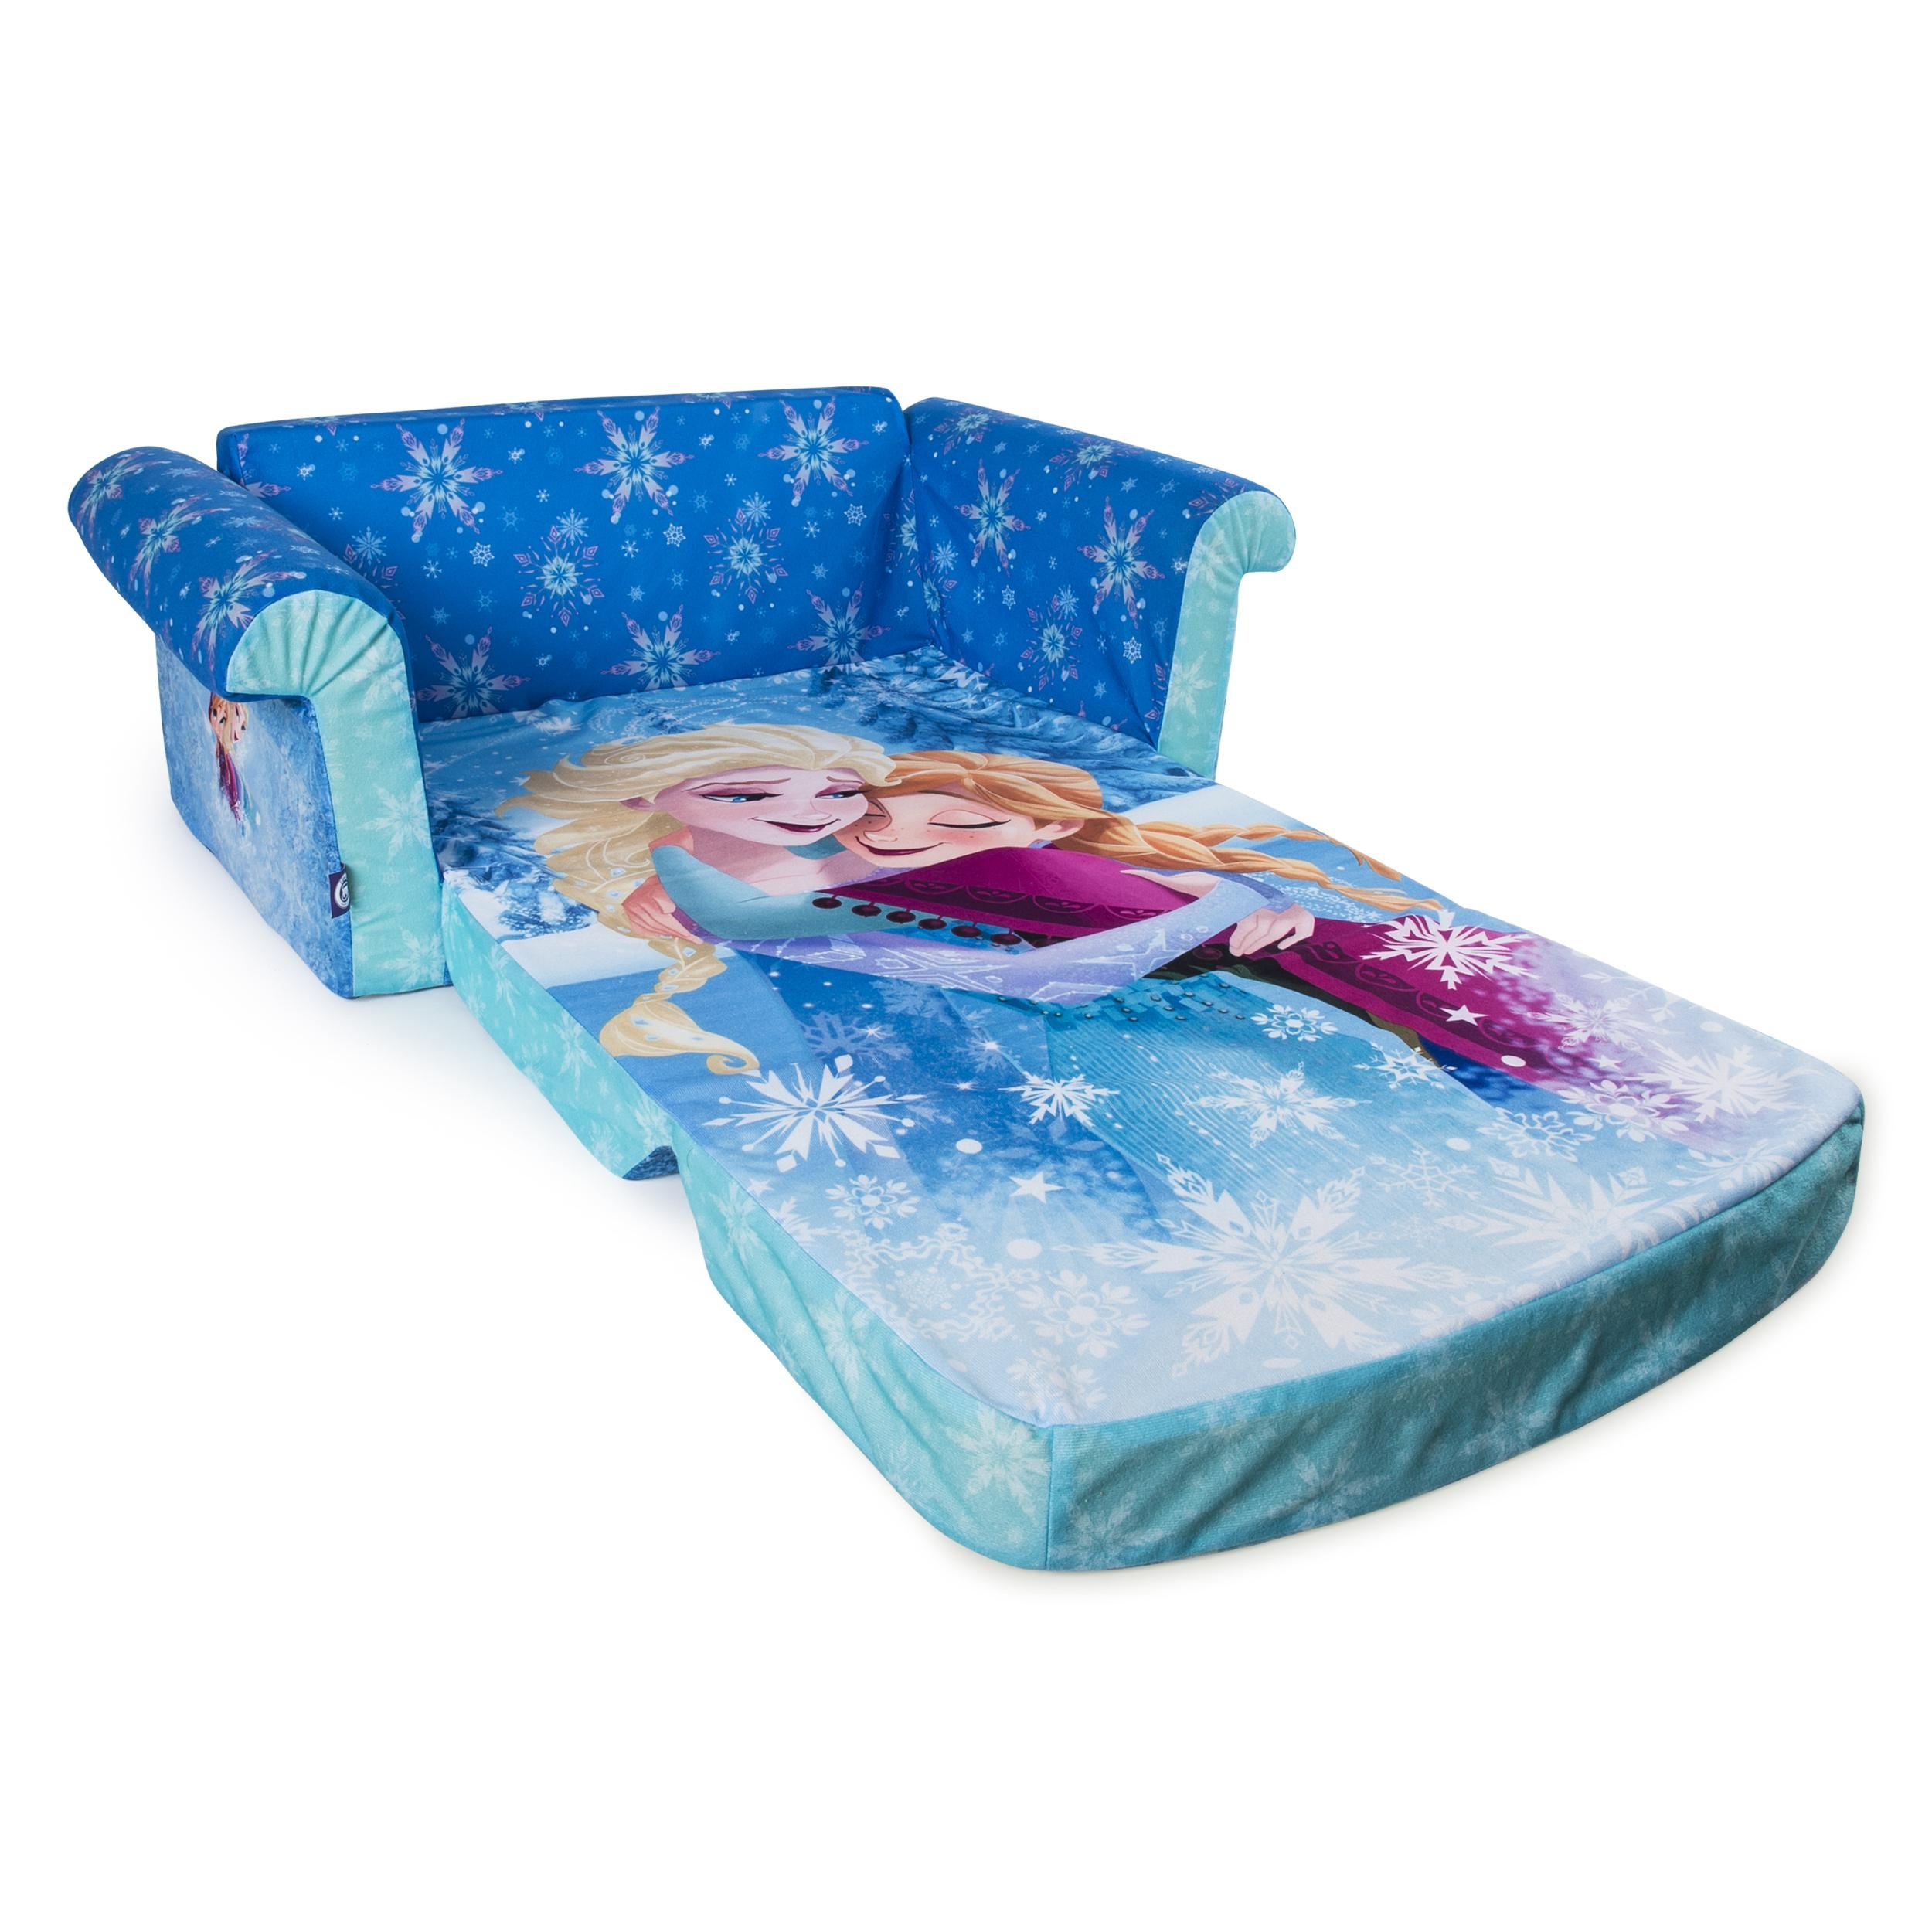 Marshmallow Furniture, Children's 2 In 1 Flip Open Foam Sofa With Regard To Disney Princess Sofas (Image 11 of 20)